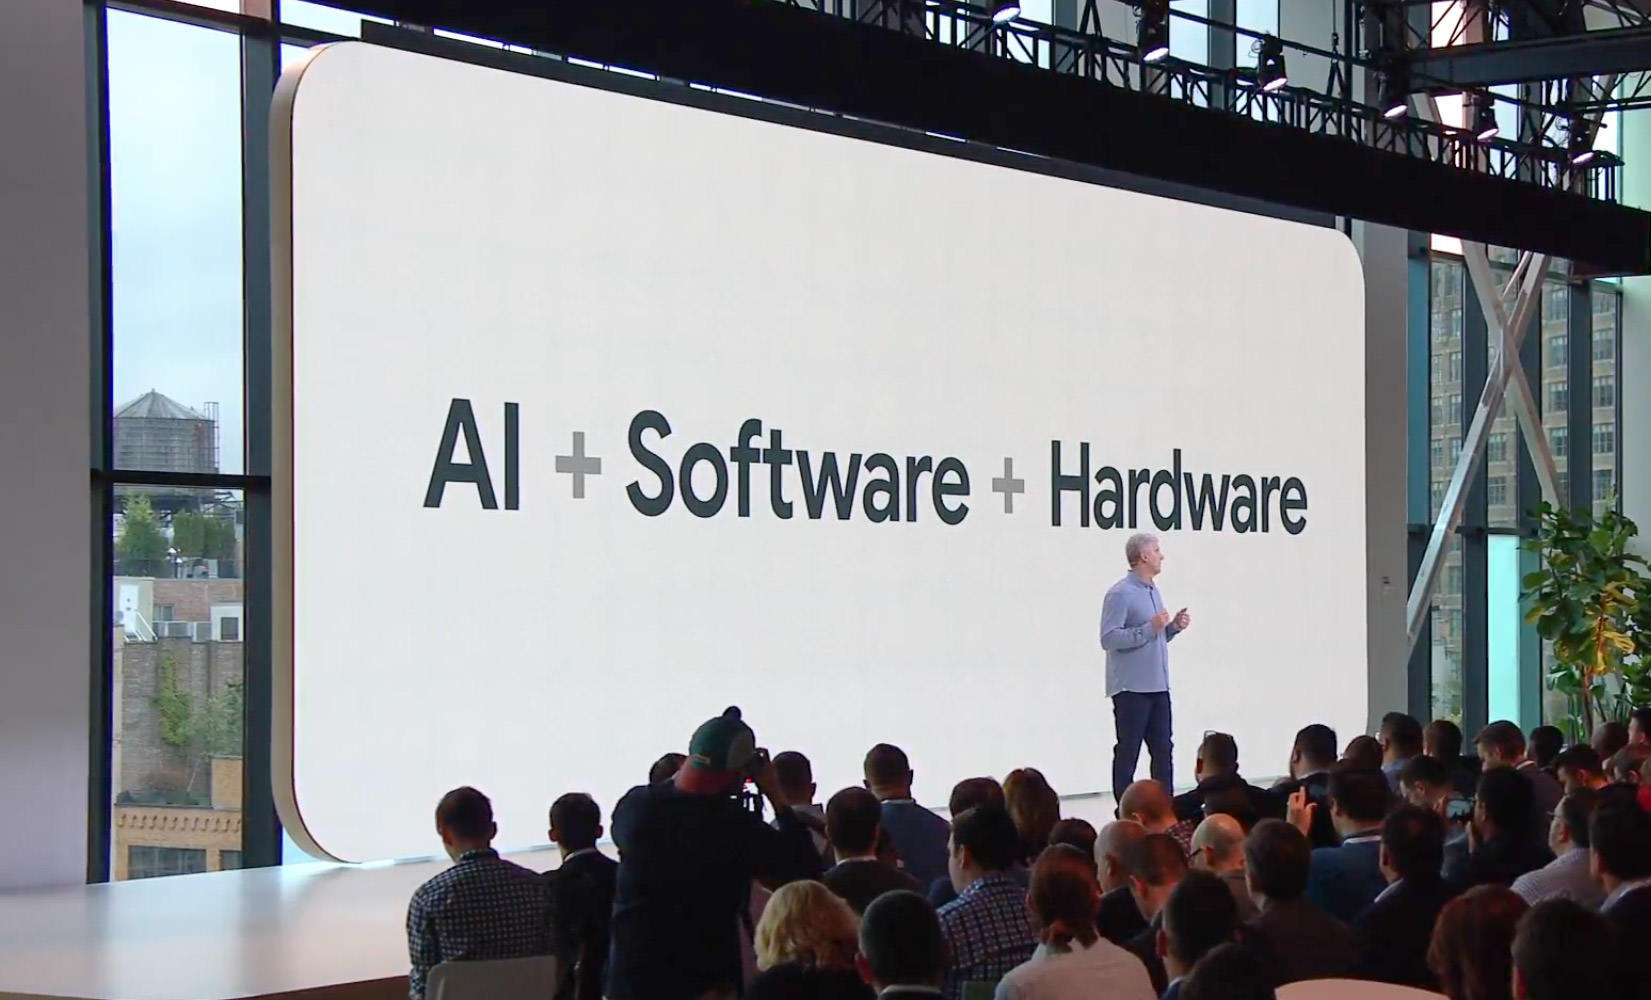 Google's Rick Osterloh touted his company's combination of hardware, software and artificial intelligence technology at the the Google Pixel 3 launch event.